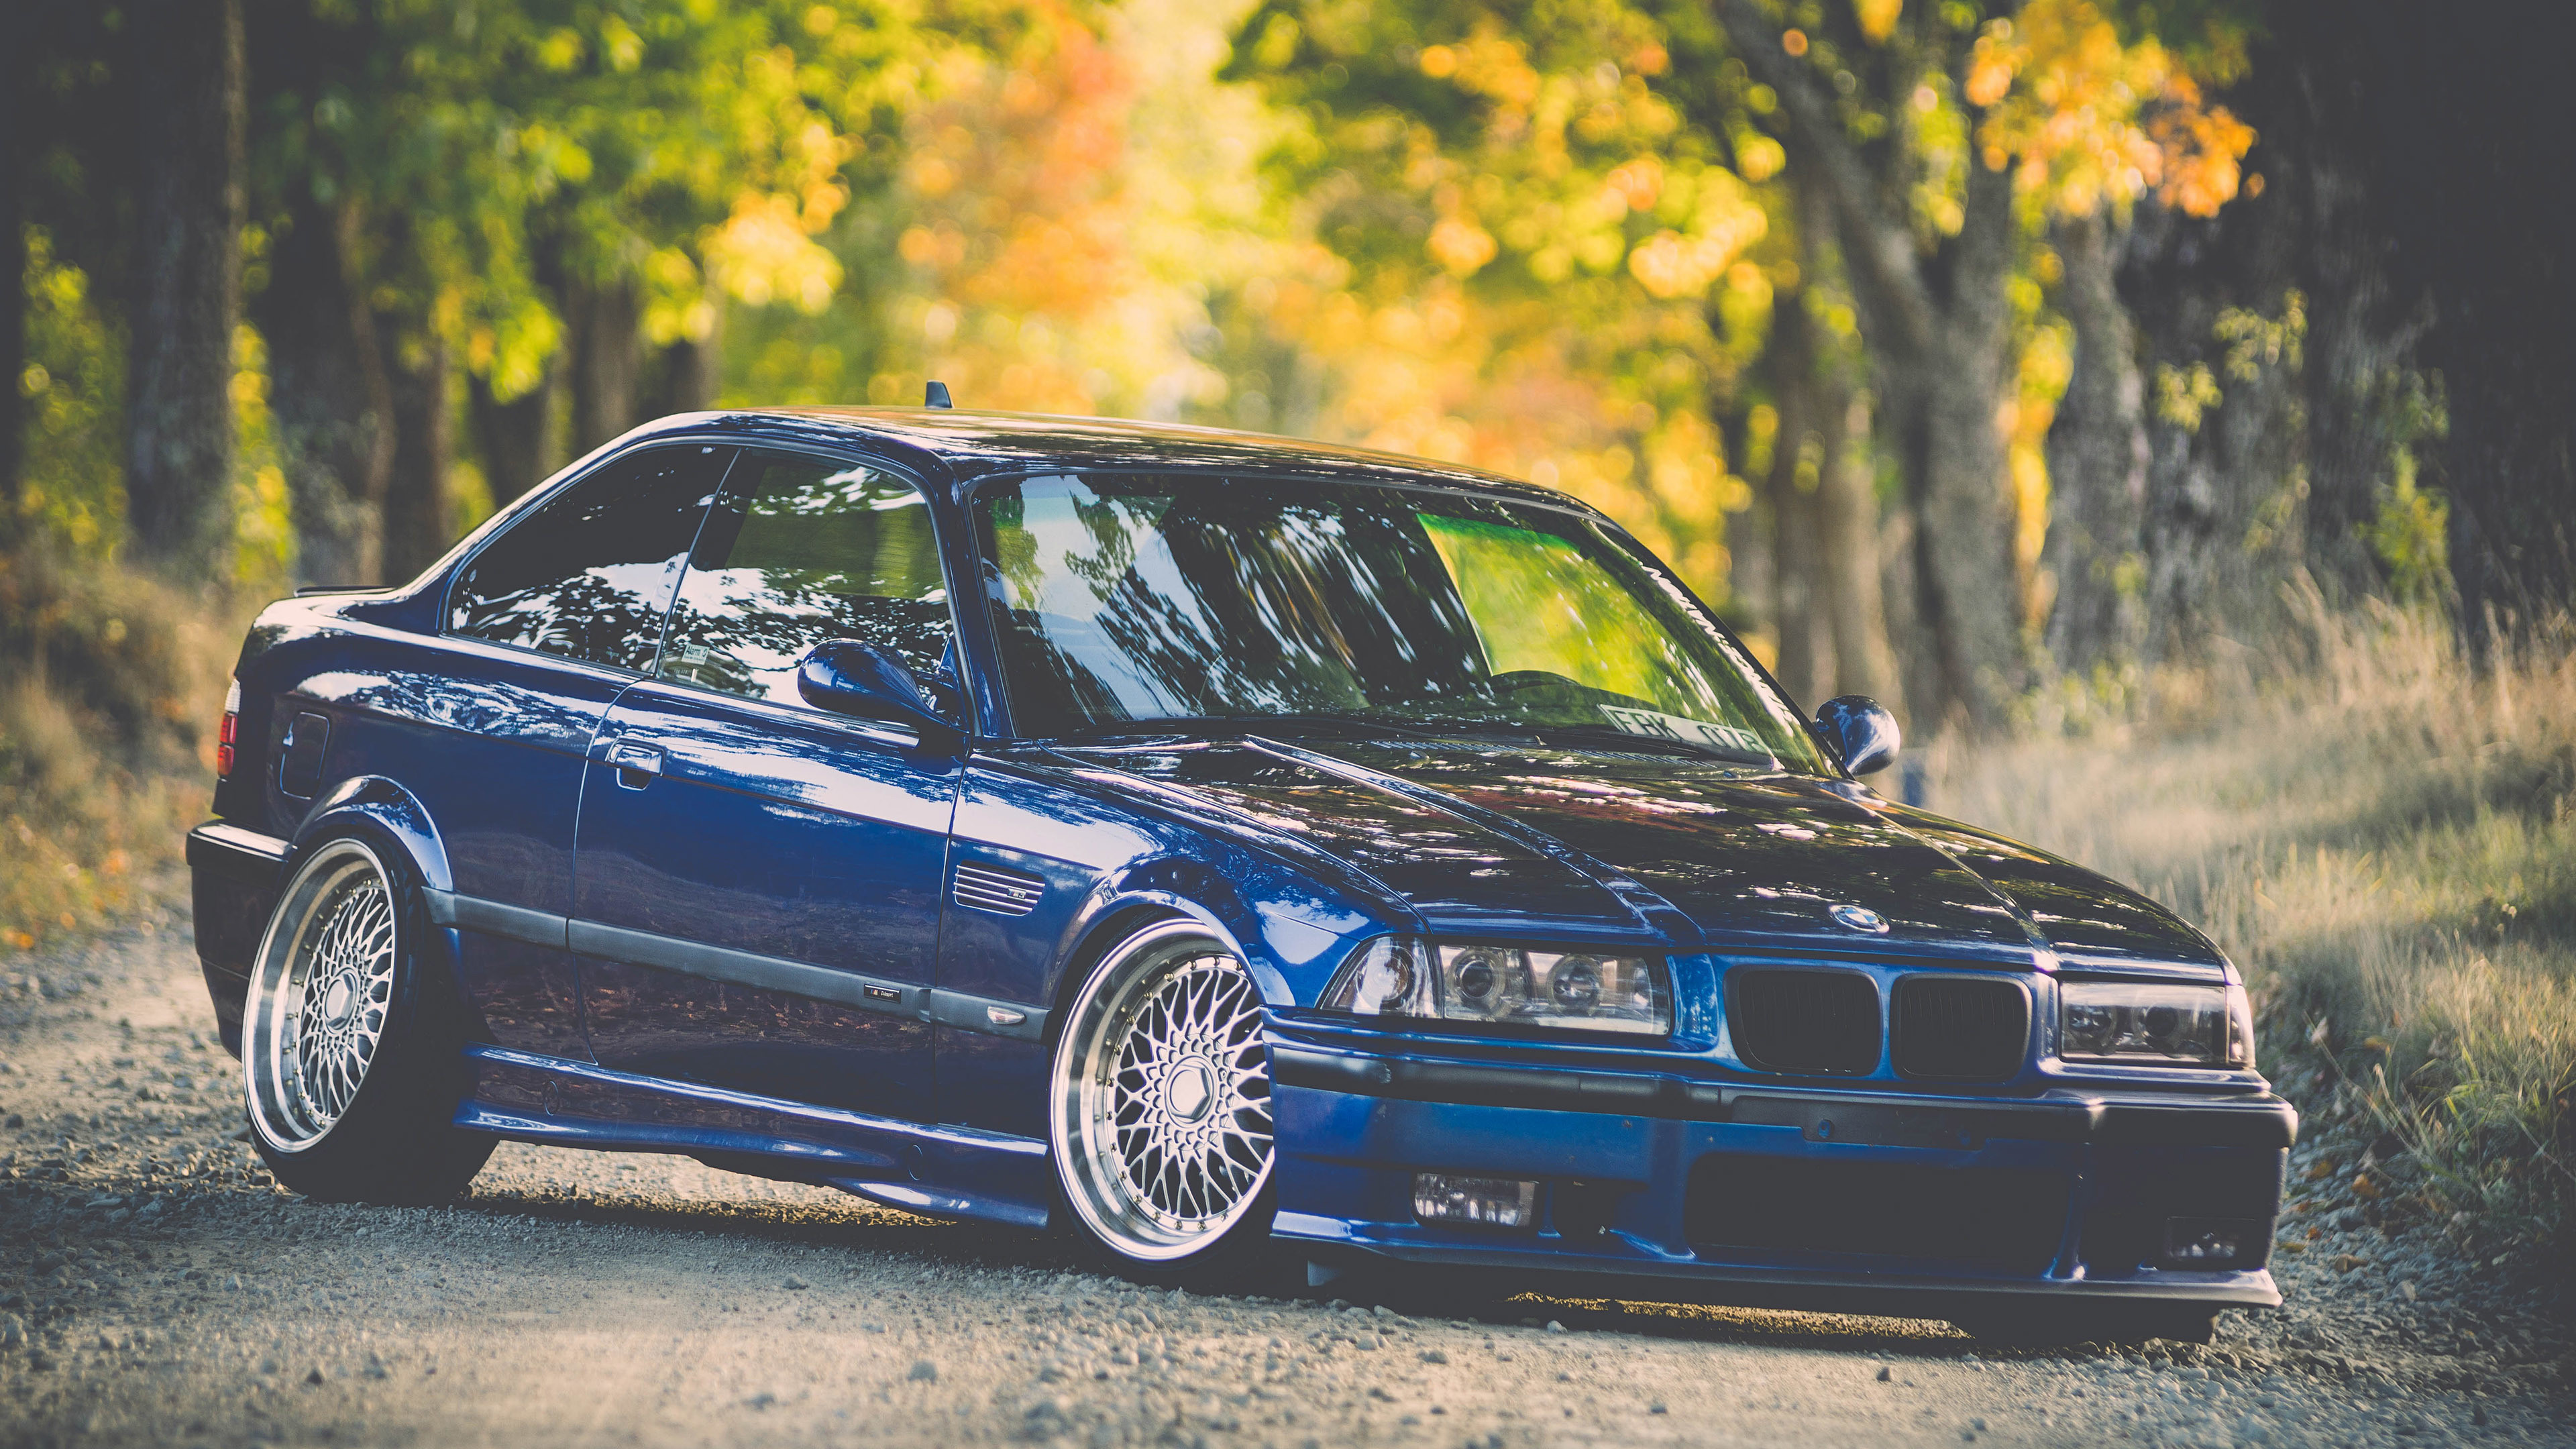 66 Bmw E36 Wallpapers on WallpaperPlay 3840x2160